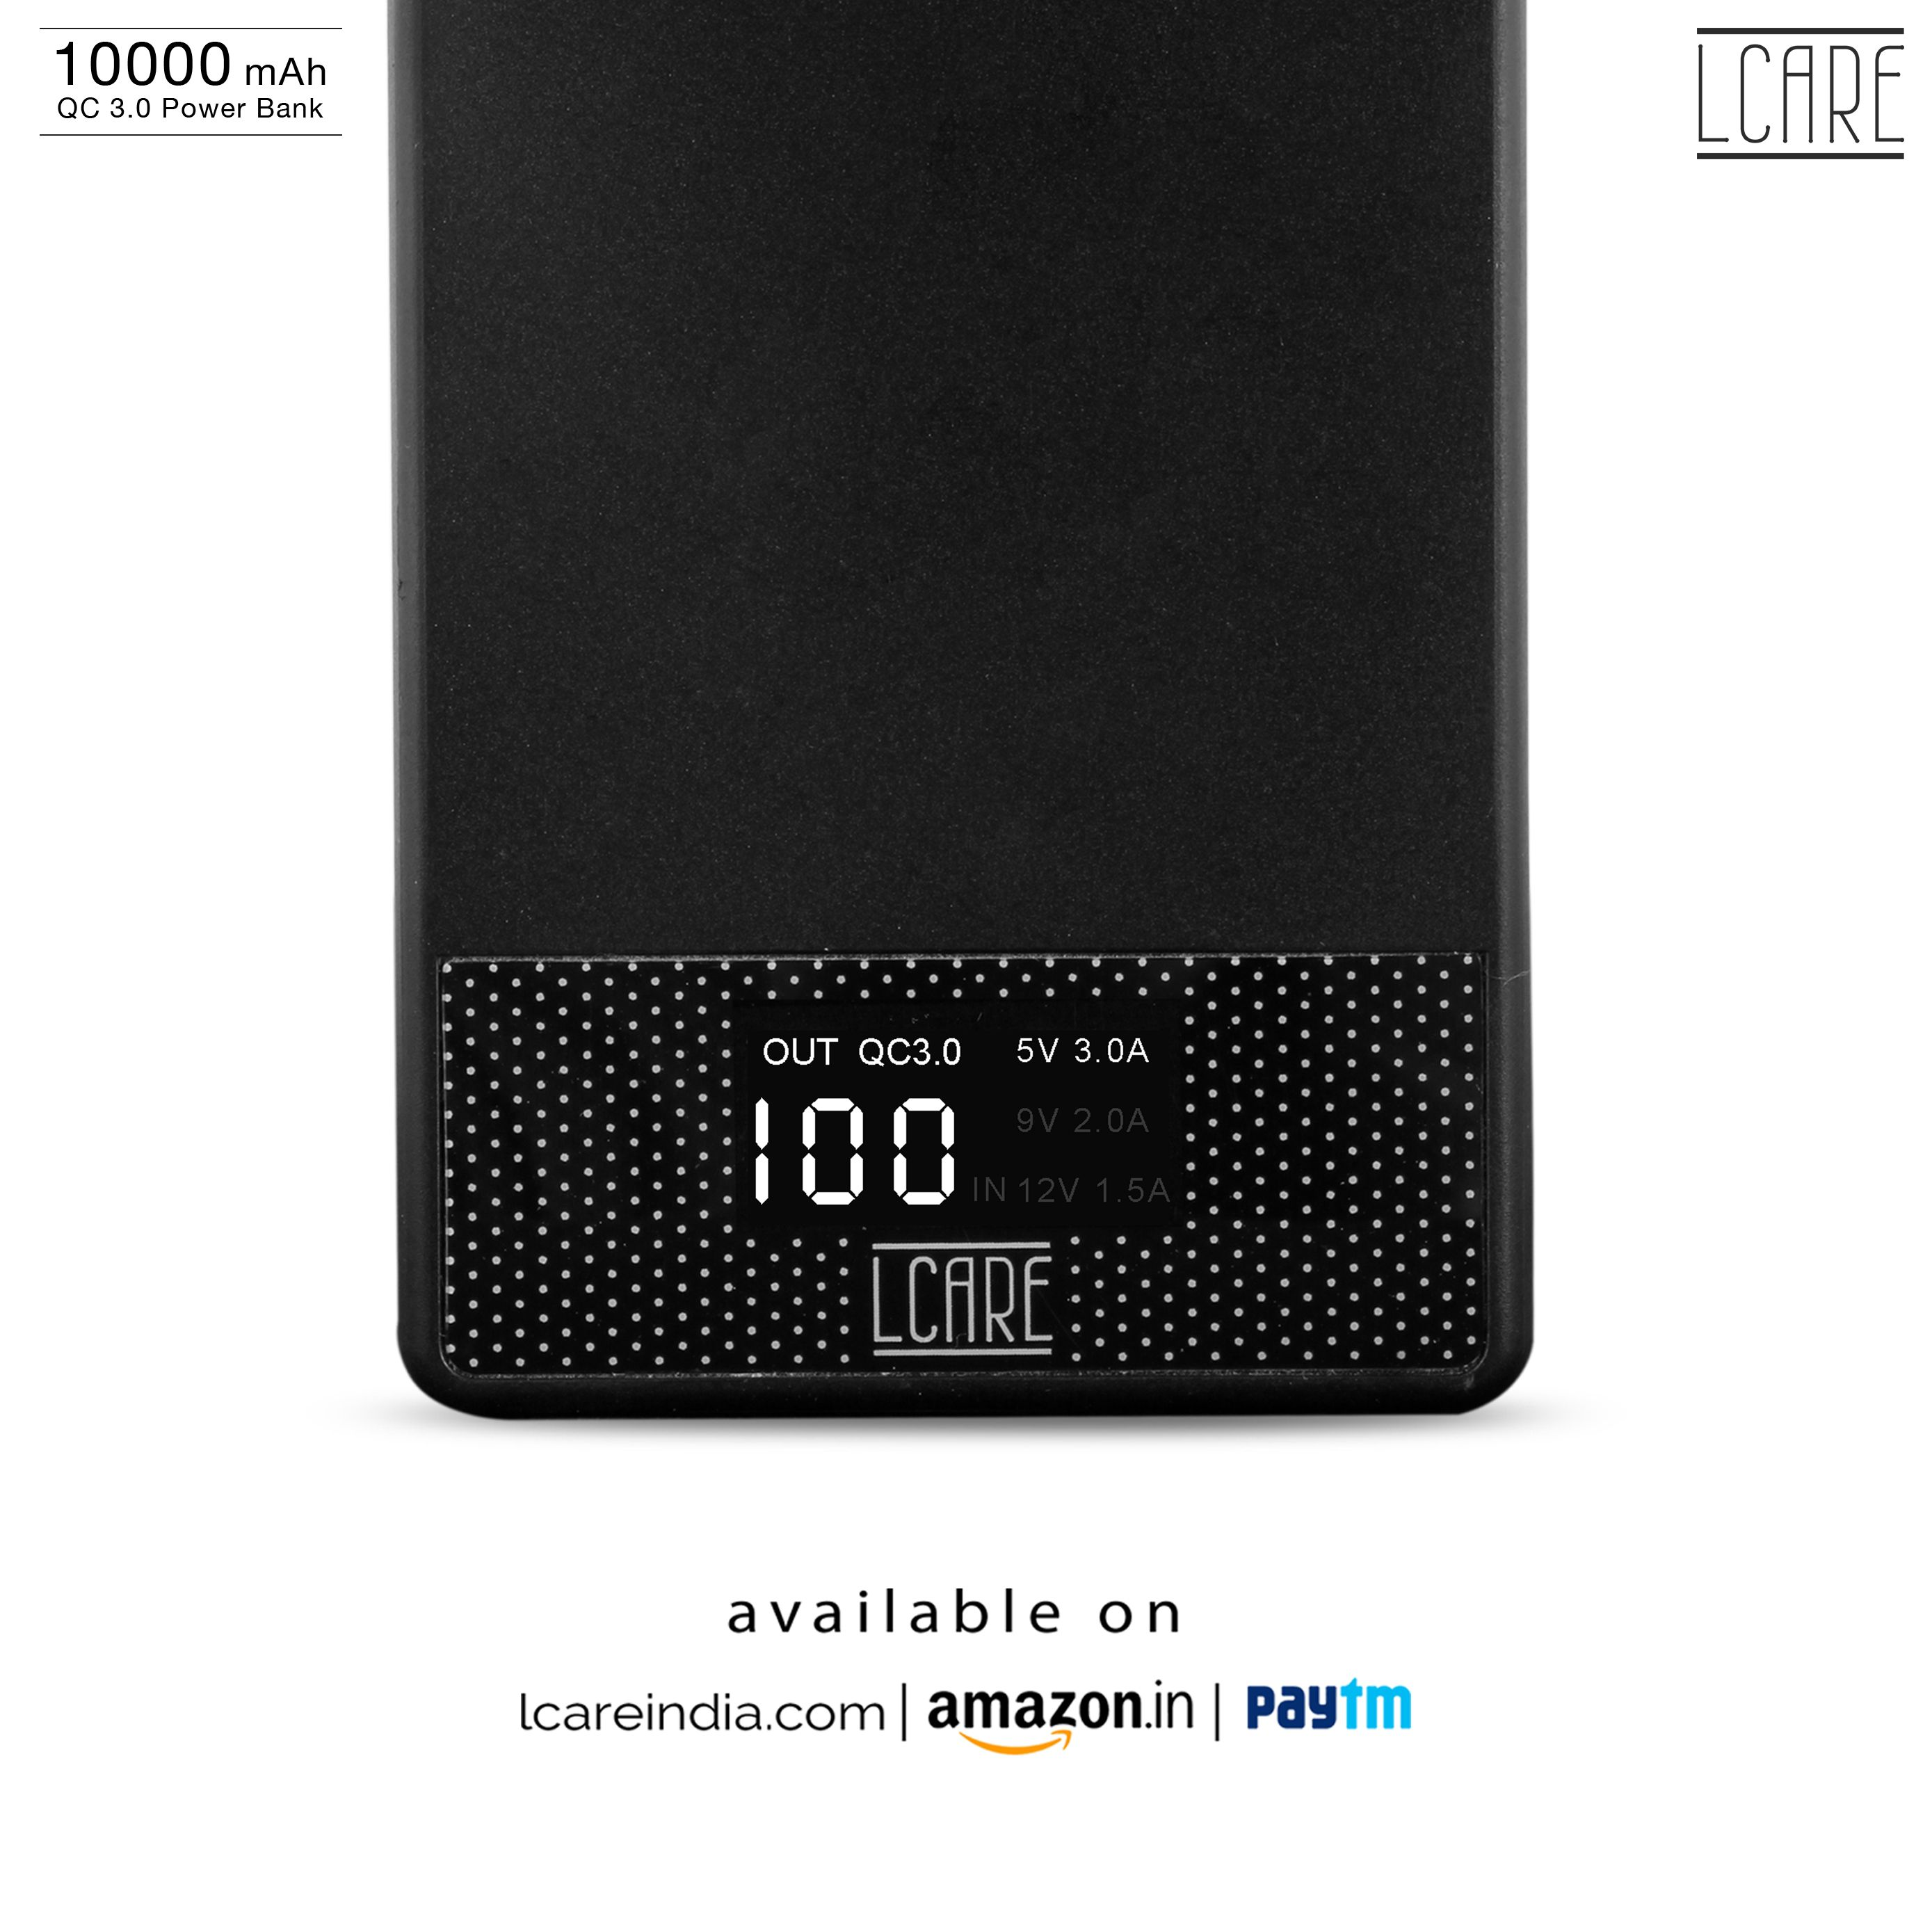 Charge Your Device With Lcare Quick That Comes Along A Bestseller Xiaomi Powerbank 10000mah Power Bank Mi Pro 2 10000 Mah Fast Charging Banks Battery Buy Now At The Official Store